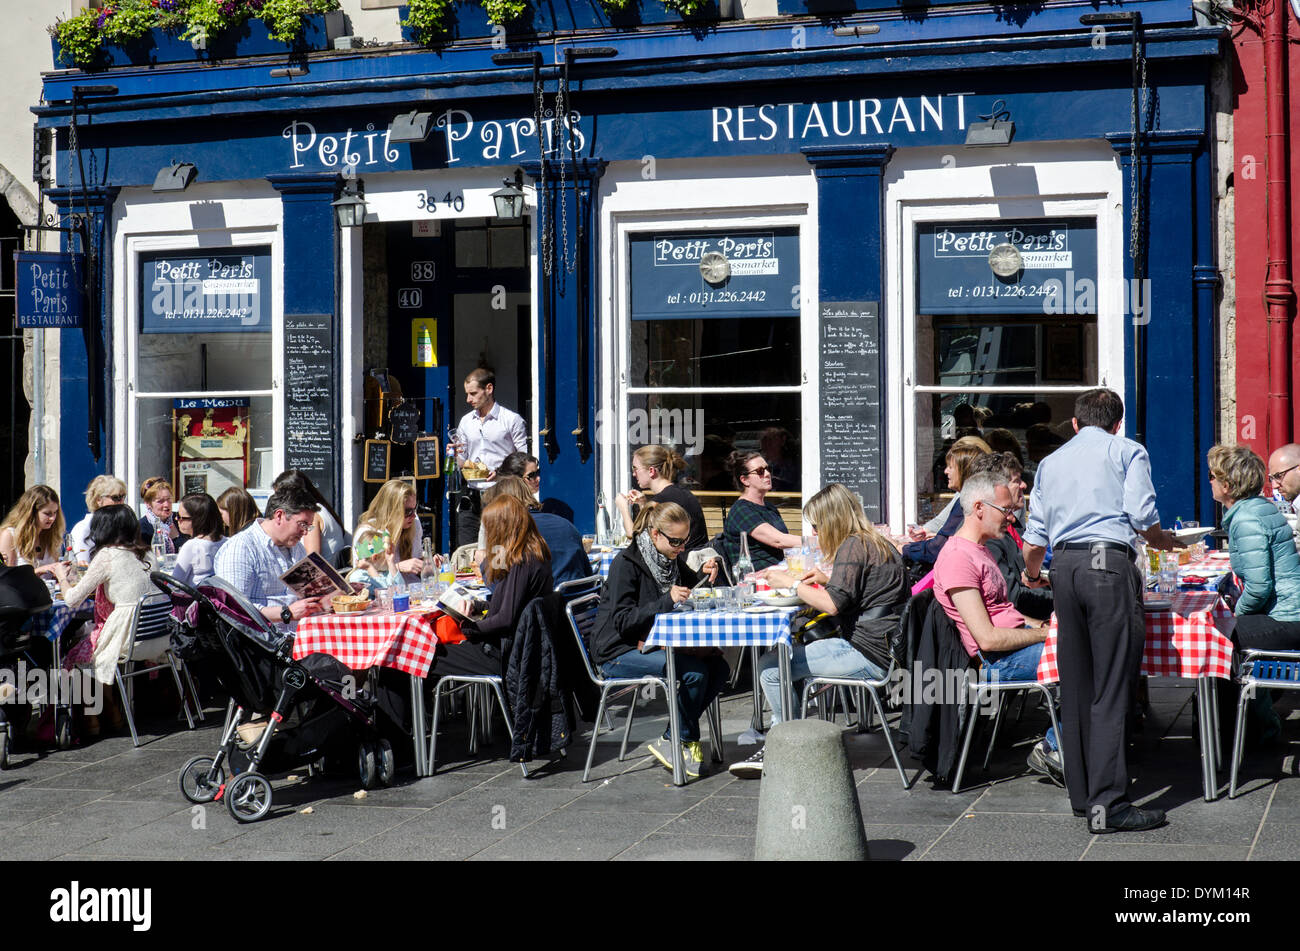 Diners eating outside the 'Petit Paris' French restaurant in the Grassmarket, Edinburgh. - Stock Image